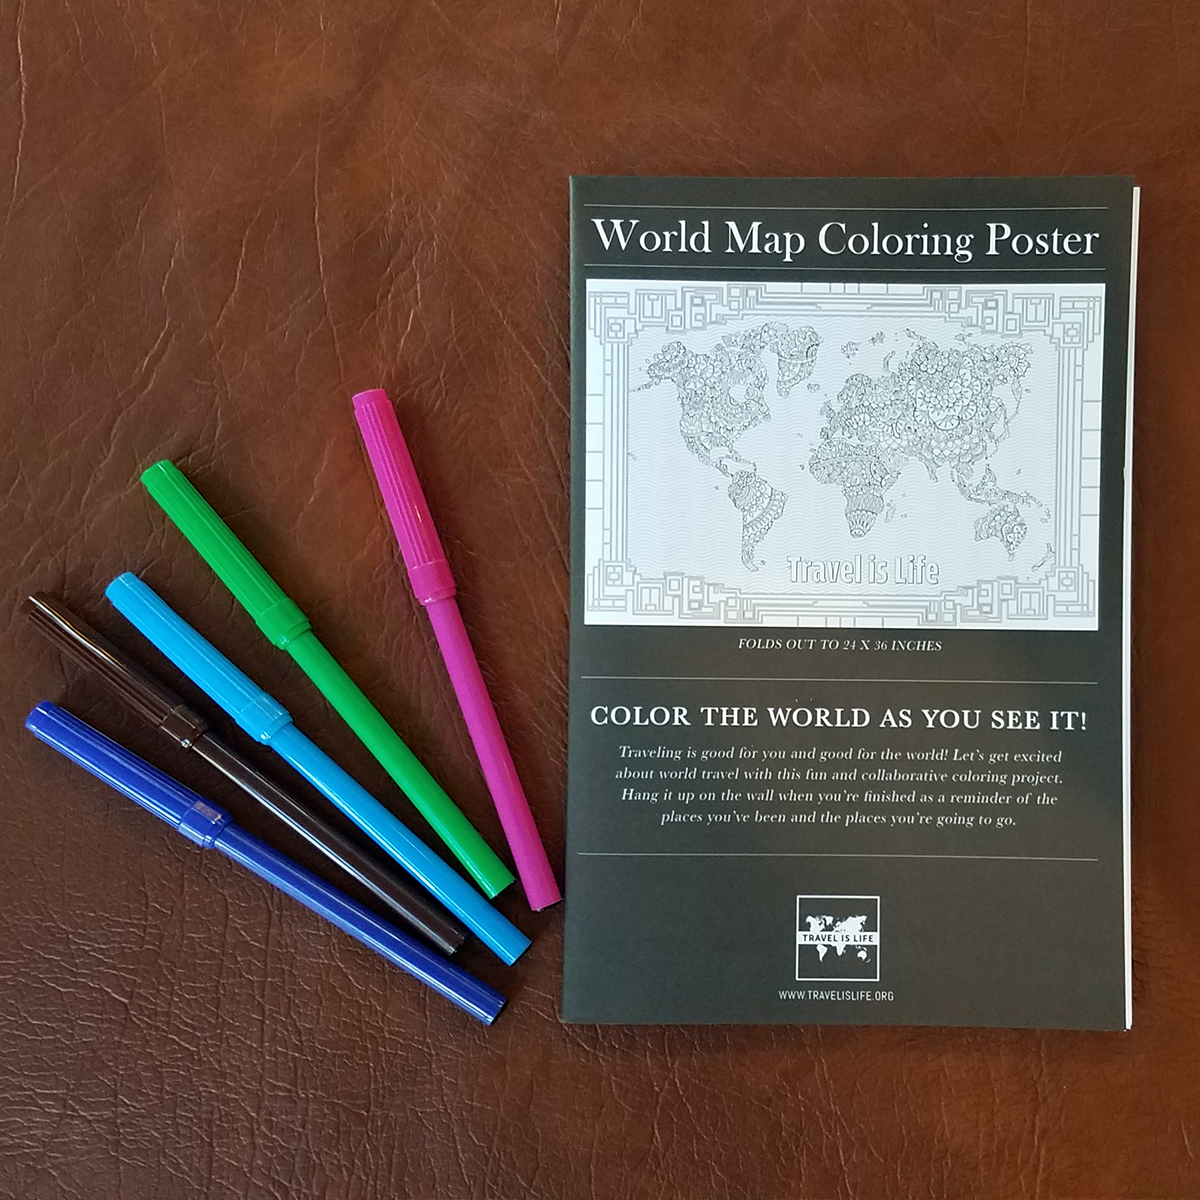 World Map Coloring Poster by Travel is Life